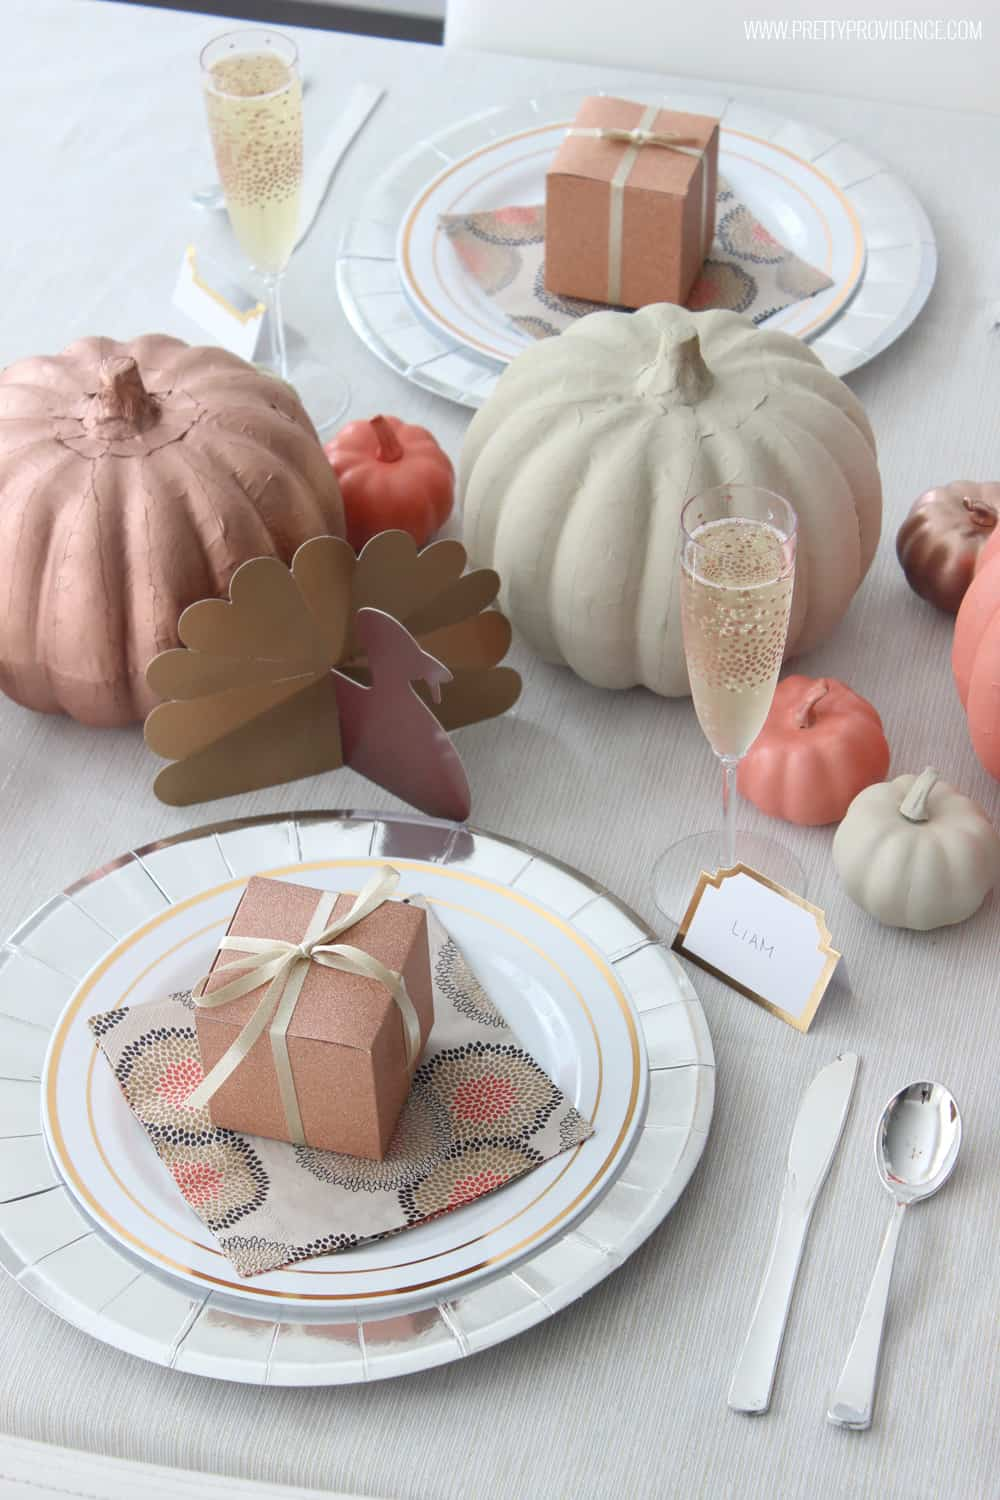 Thanksgiving table set with paper products - silver, white and copper craft pumpkins and paper turkeys.